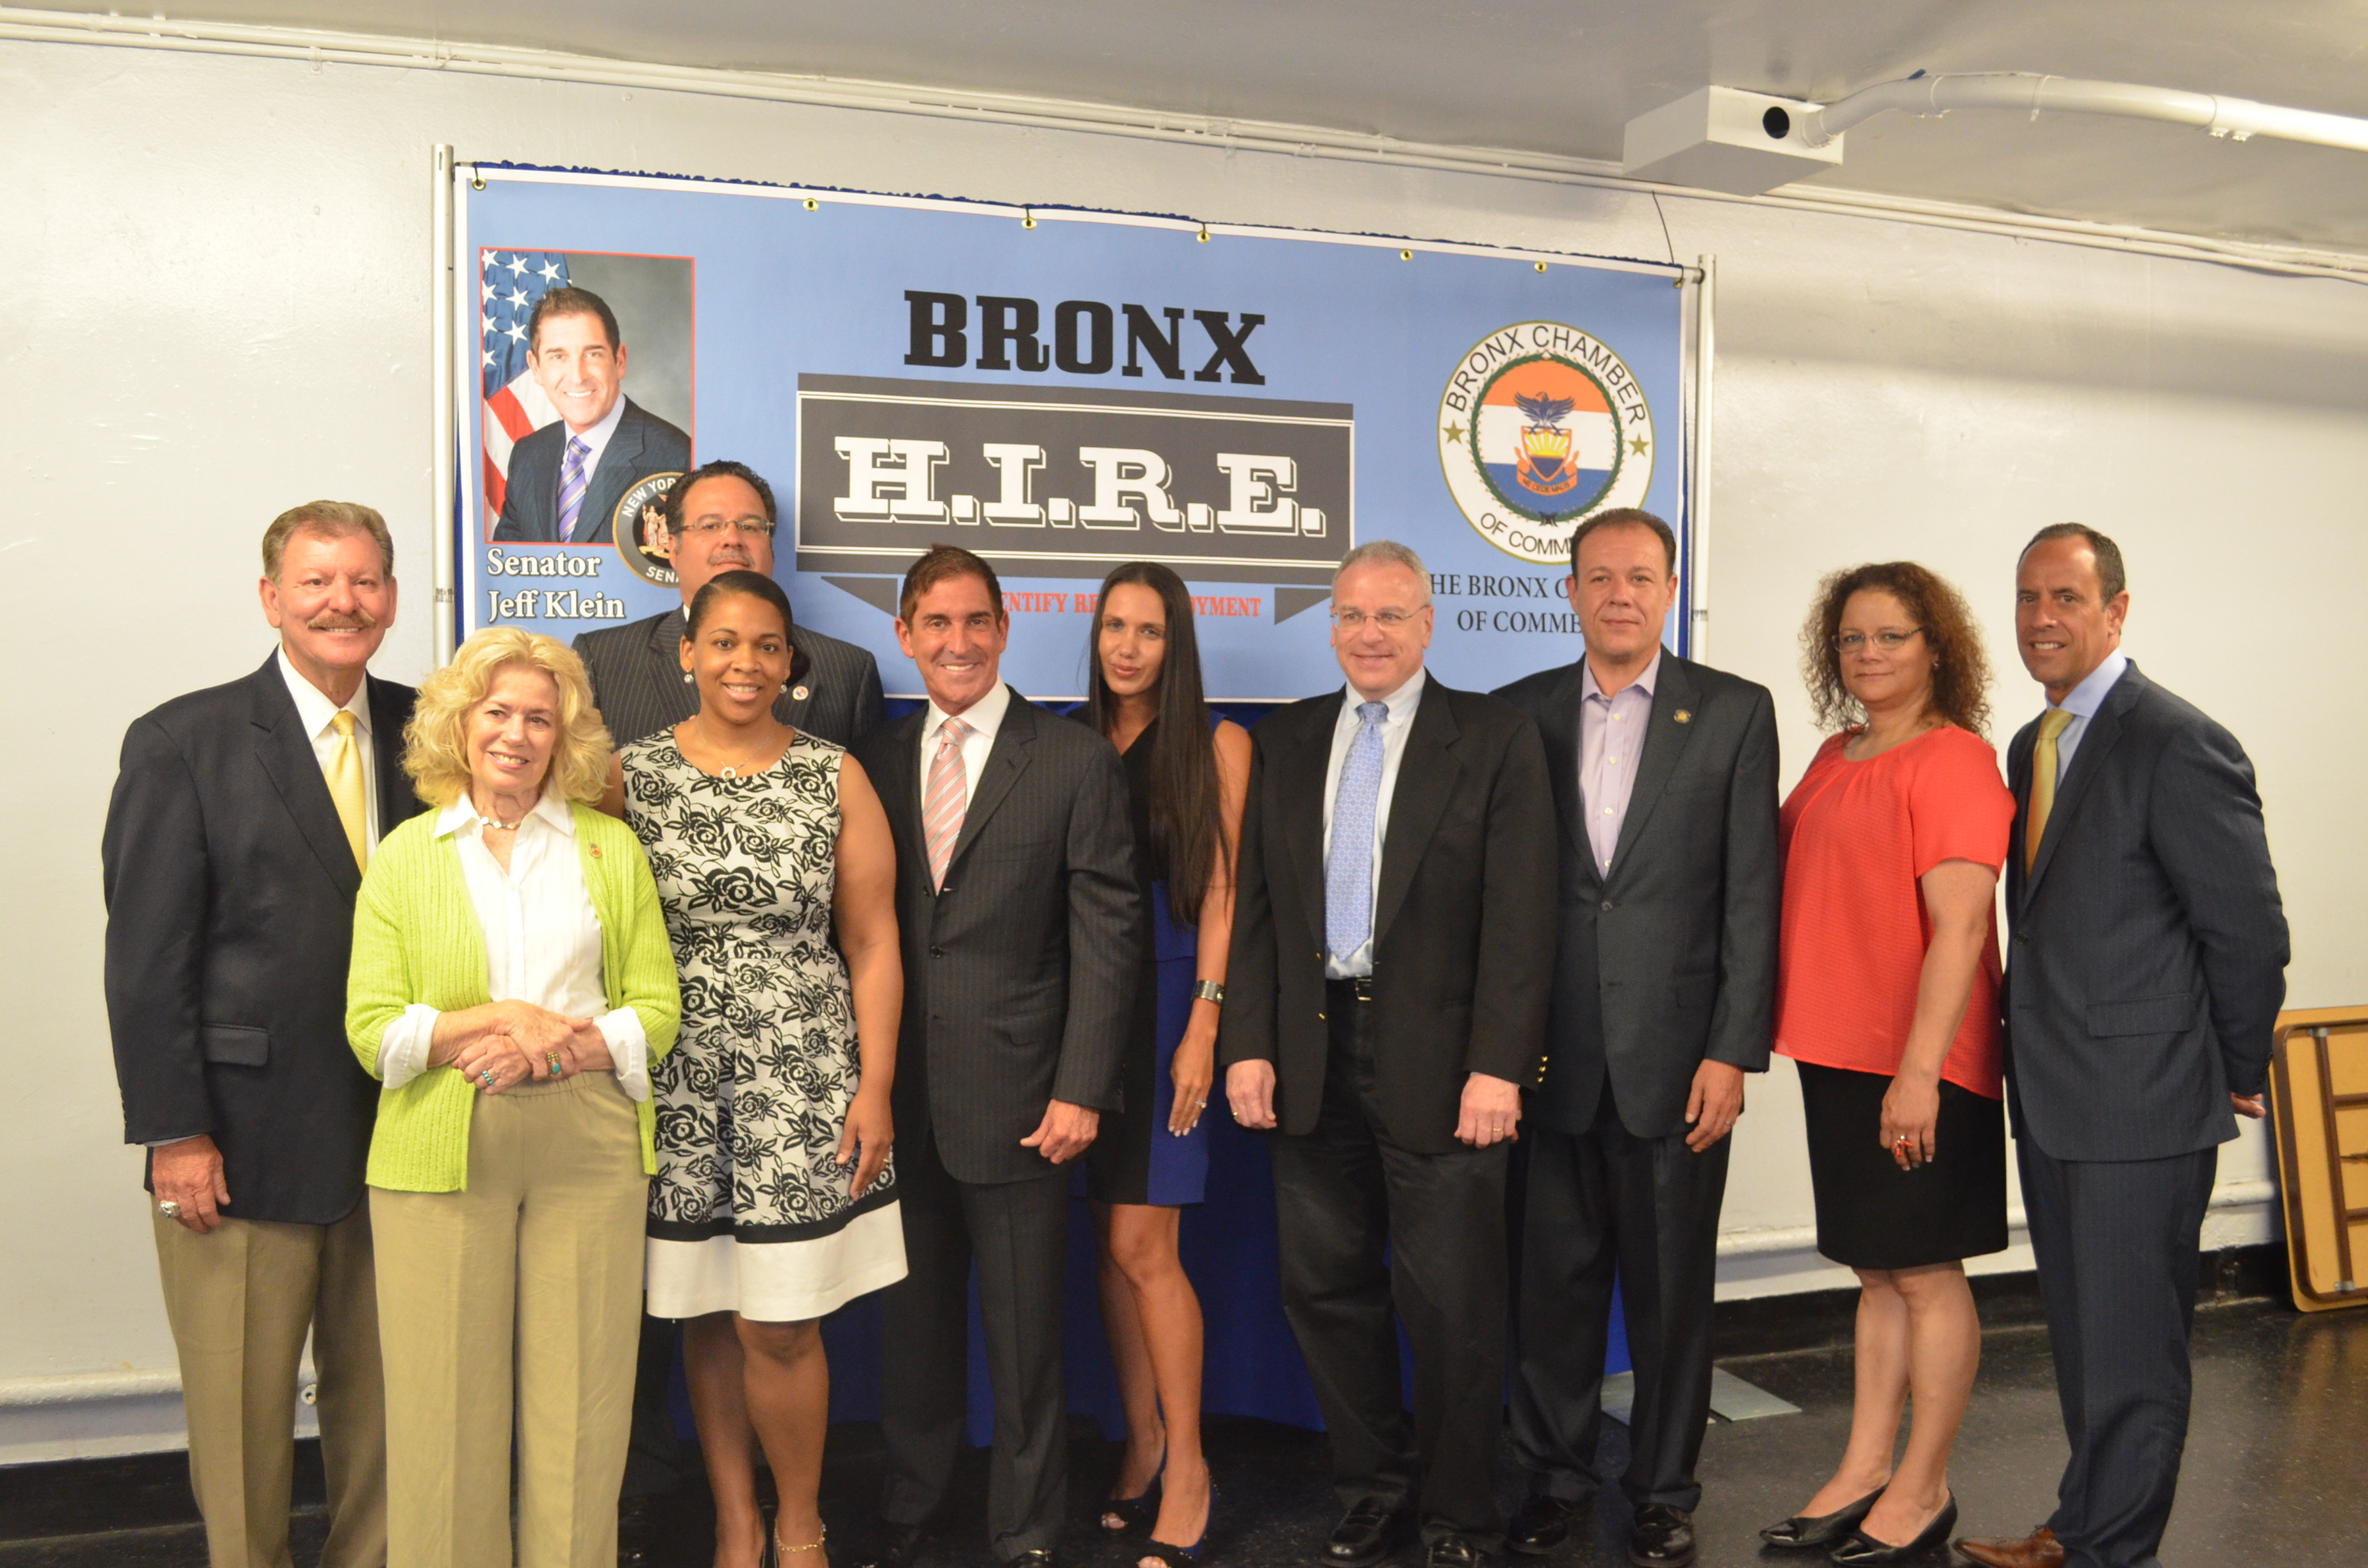 Senator Klein And Bronx Chamber of Commerce Launch Bronx H.I.R.E. Program to Combat Bronx Unemployment